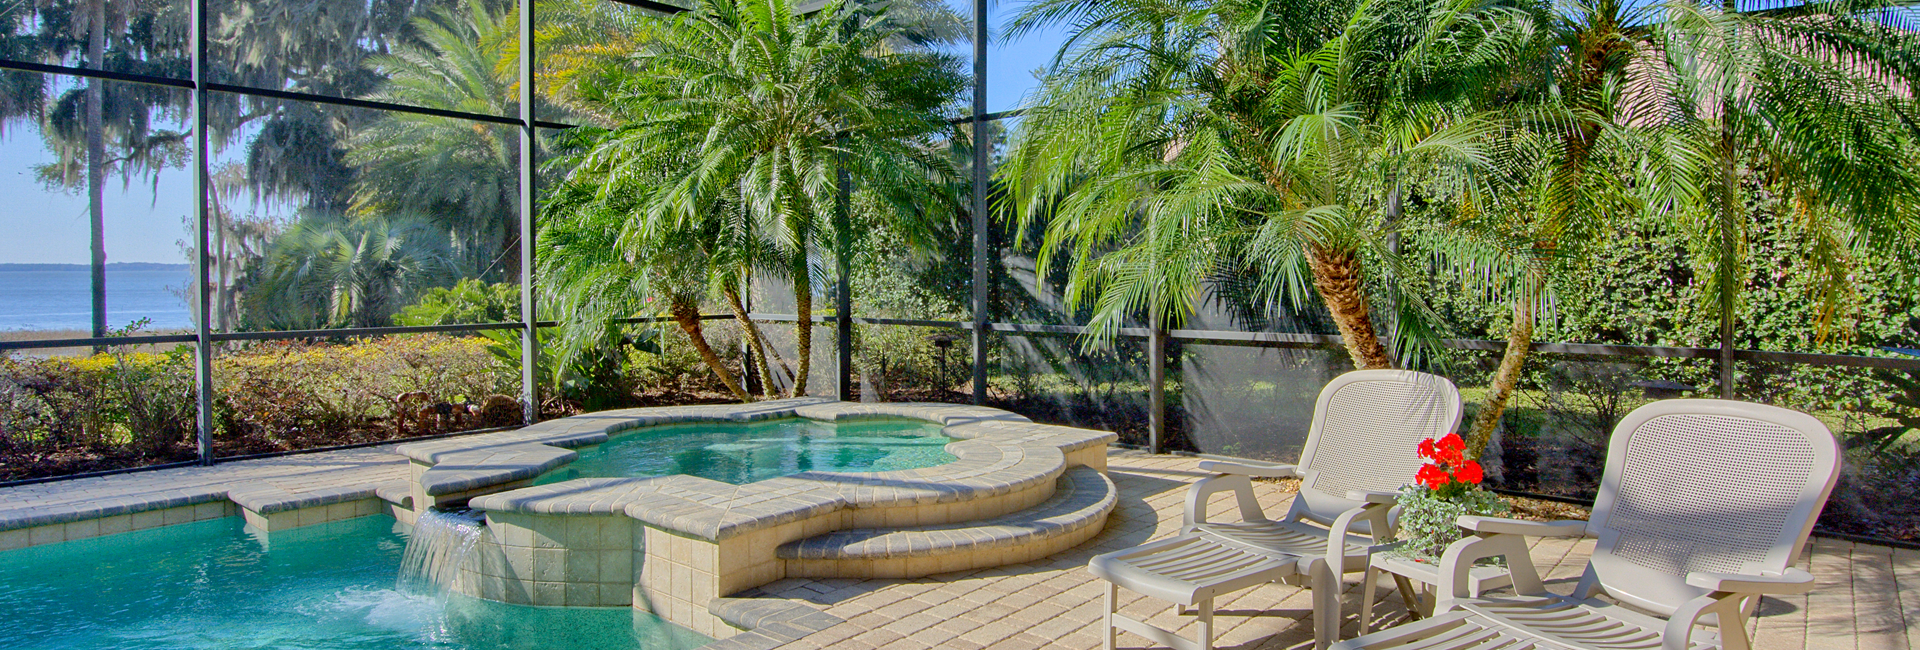 resources for buyers looking at homes for sale in central florida